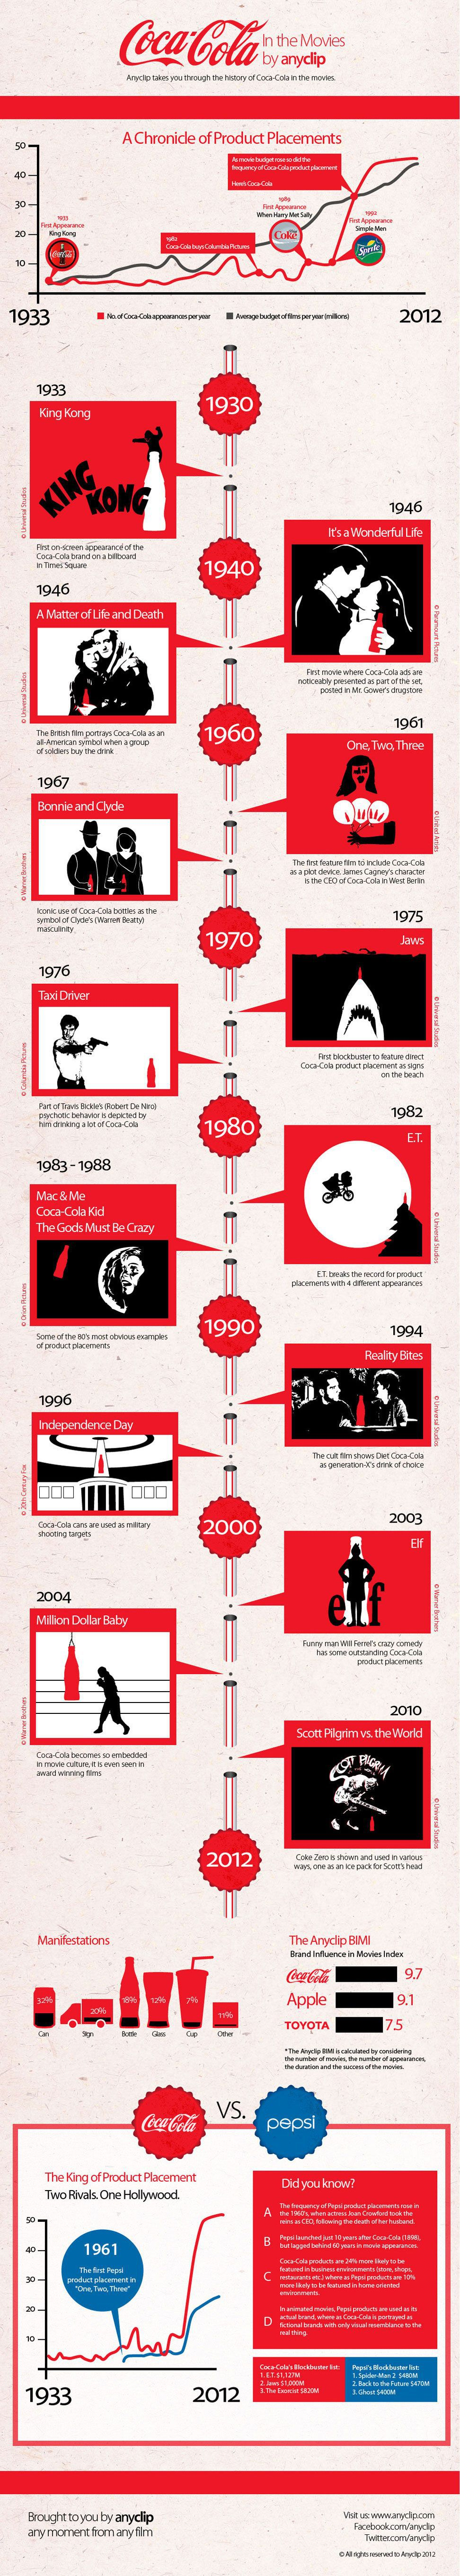 Coca-Cola and the Movies [INFOGRAPHIC] Mashable